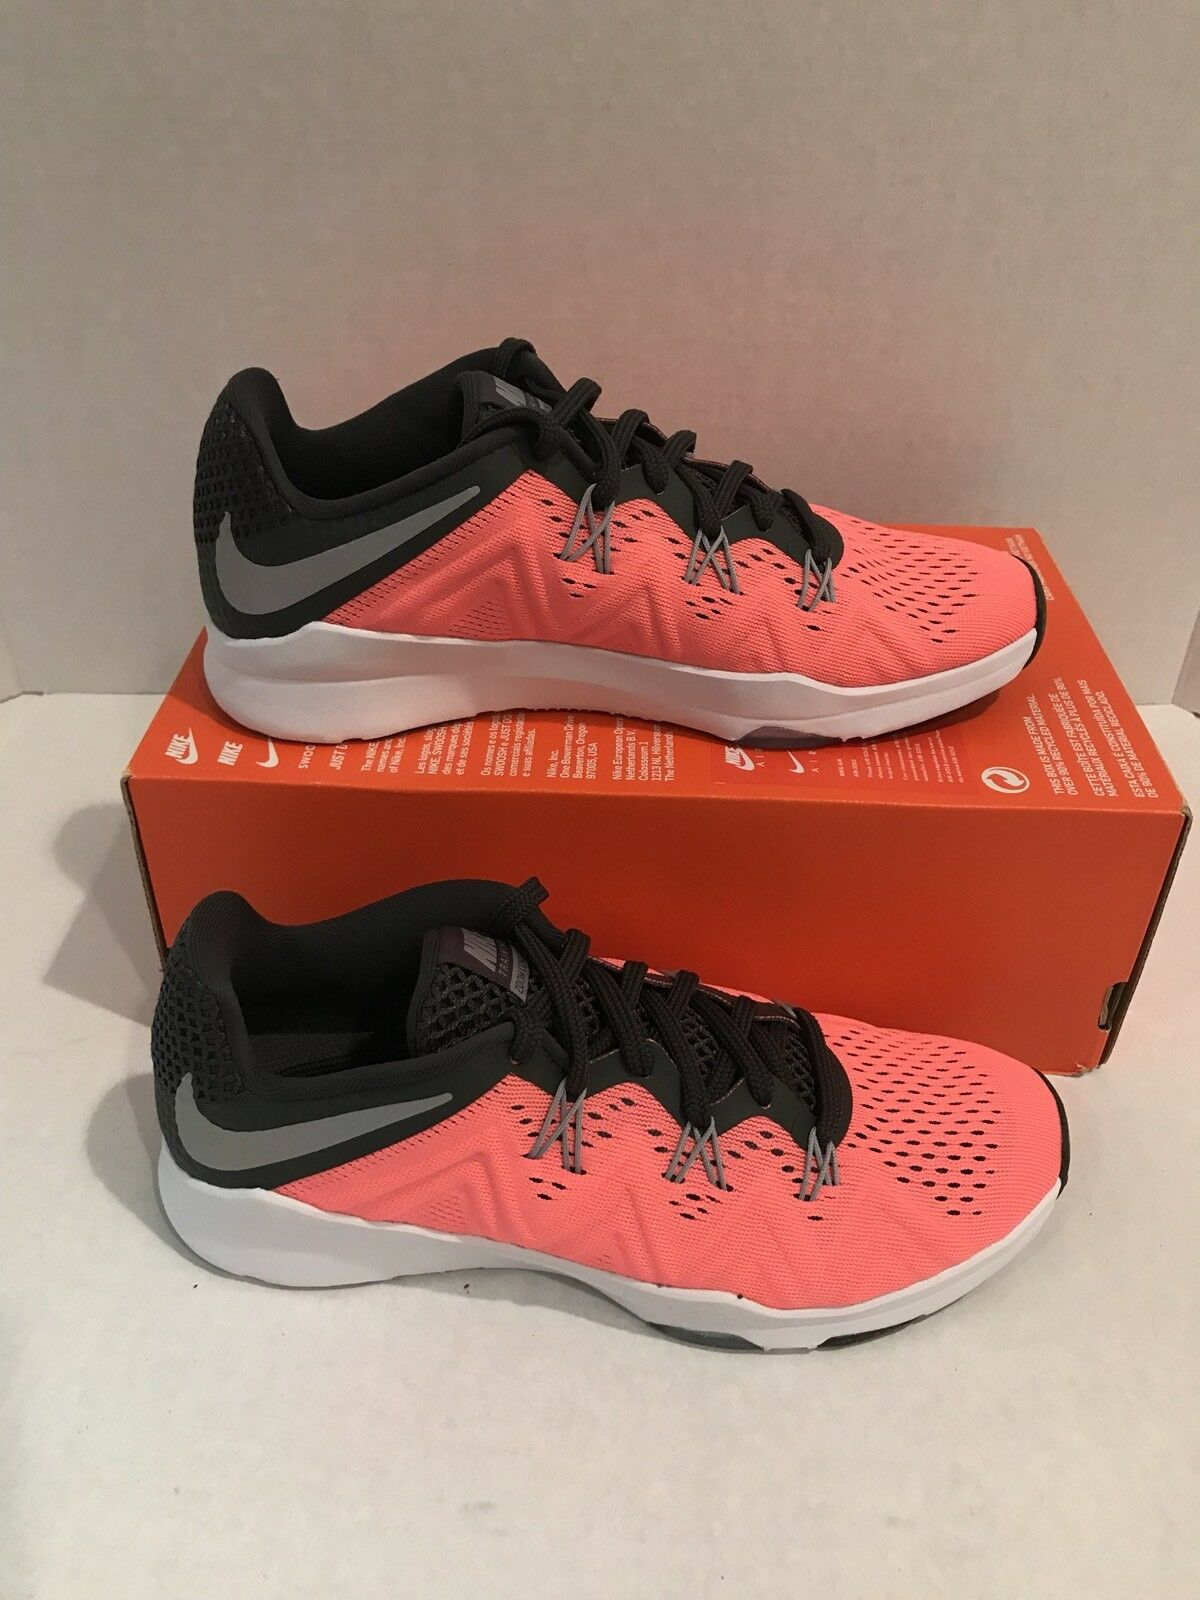 Nike Zoom Condition TR Pink Black Womens Cross Training Shoes 852472-600